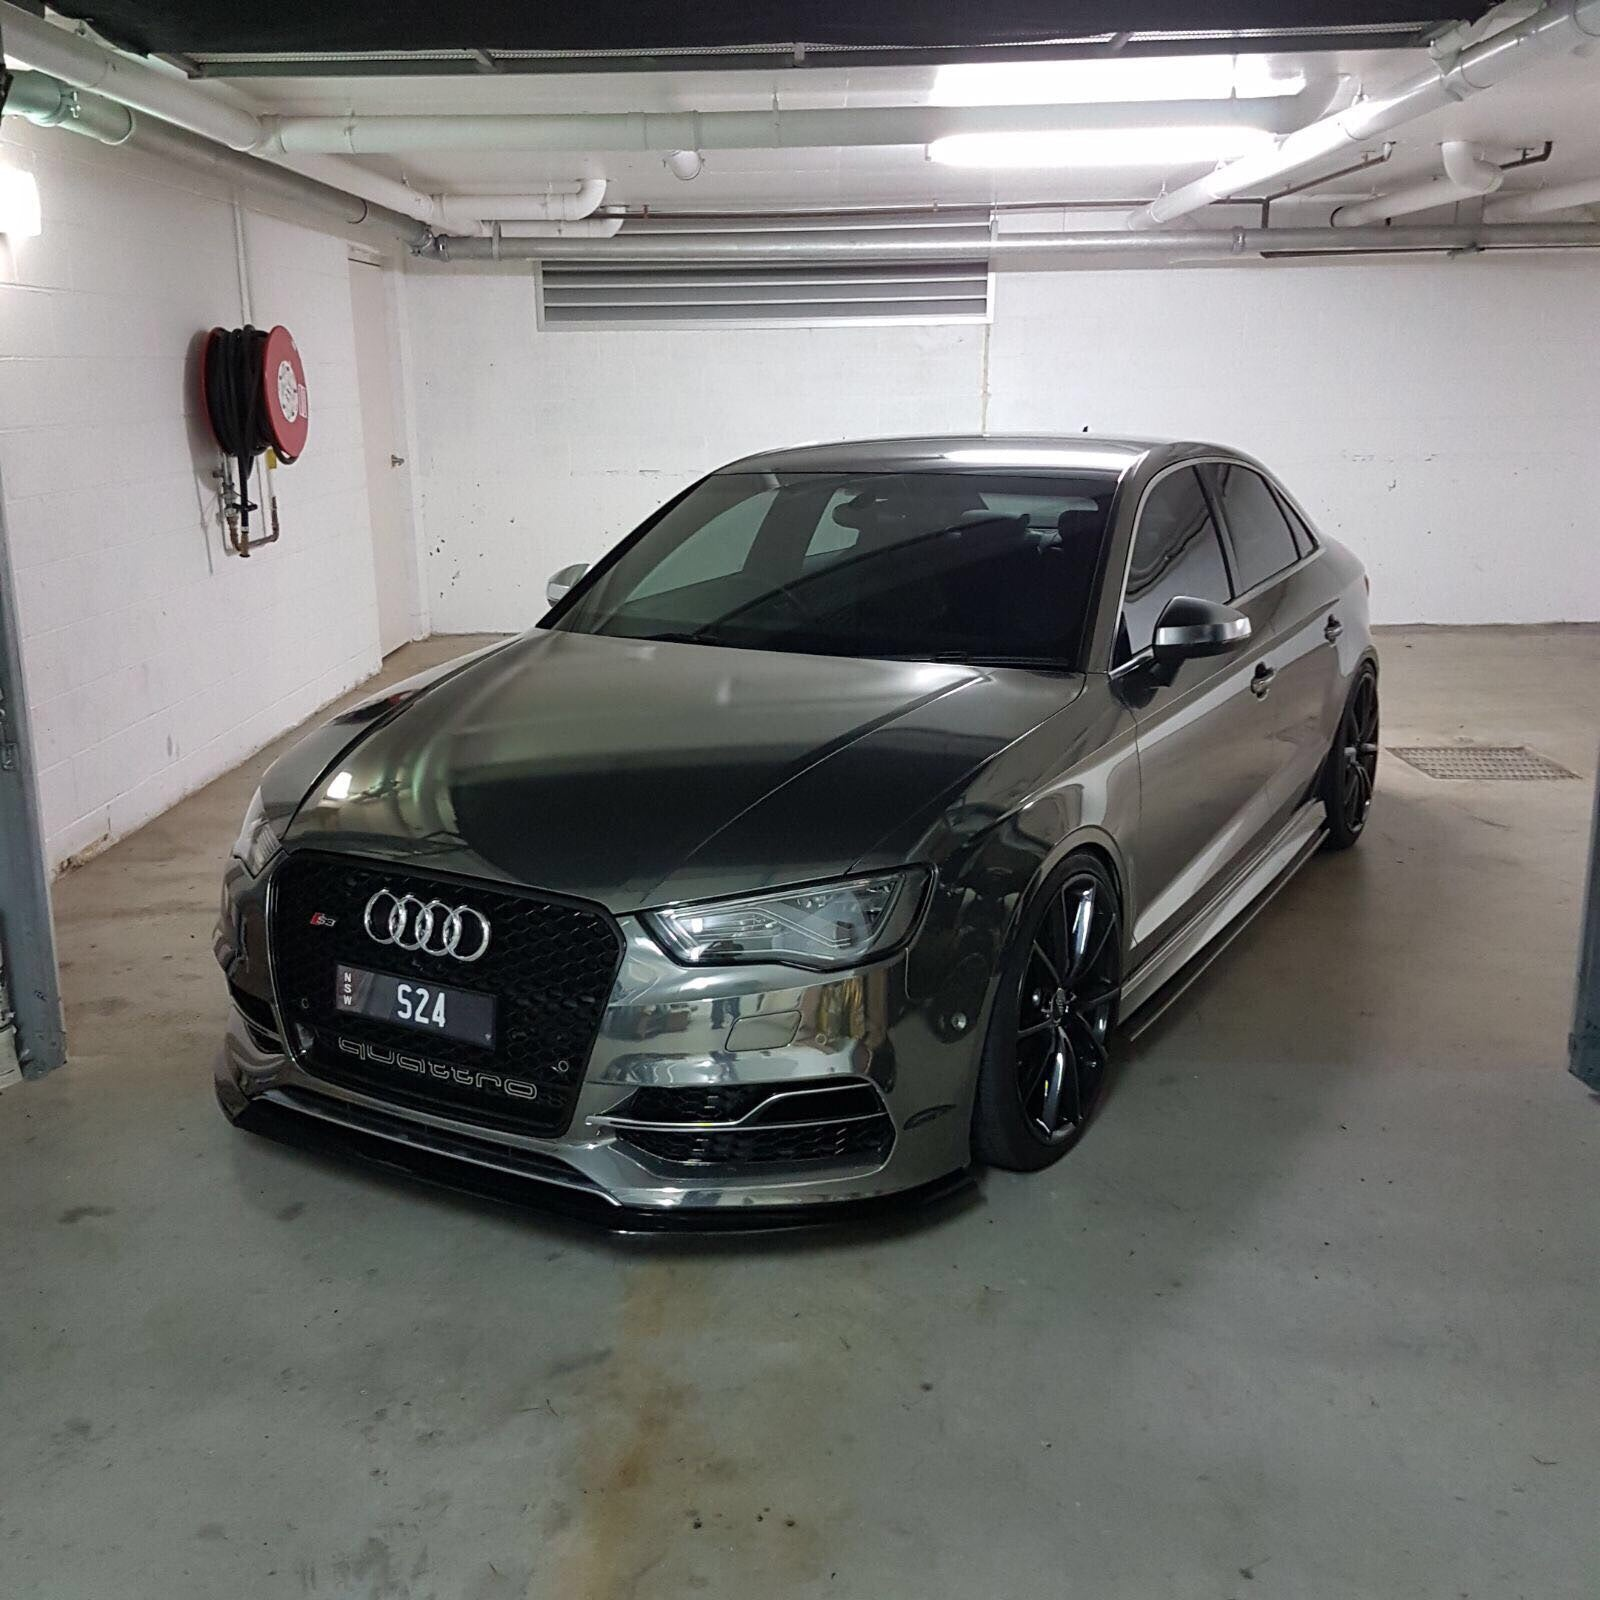 buy audi s3 a3 front splitter maxton style 2013 2016 ausbody works. Black Bedroom Furniture Sets. Home Design Ideas